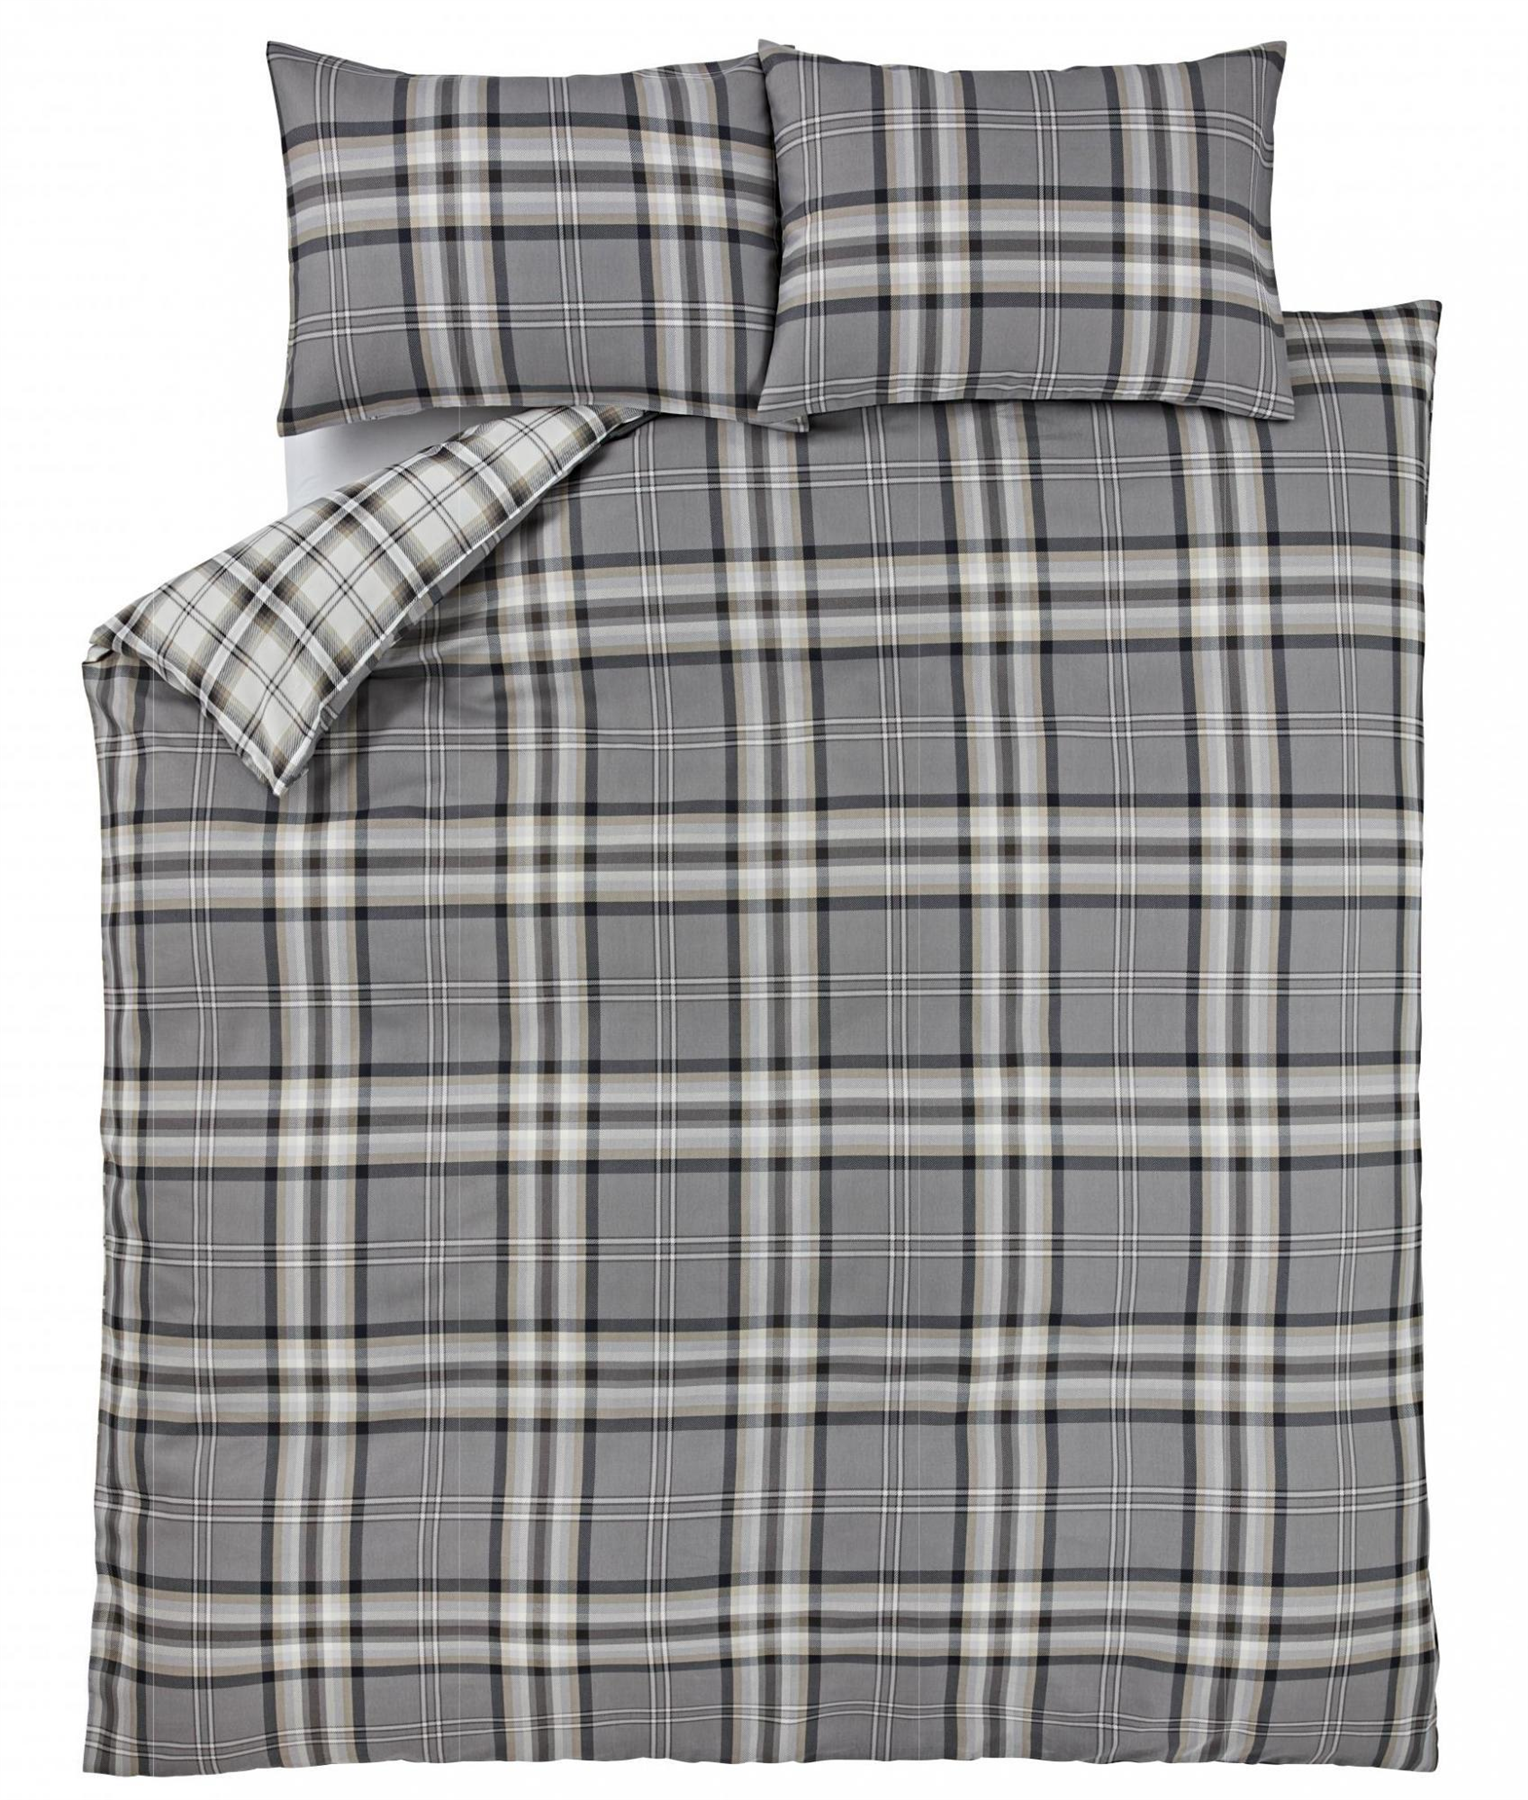 Catherine-Lansfield-Duvet-Set-Reversible-Check-Bedding-Charcoal-Pillows-Curtain thumbnail 9